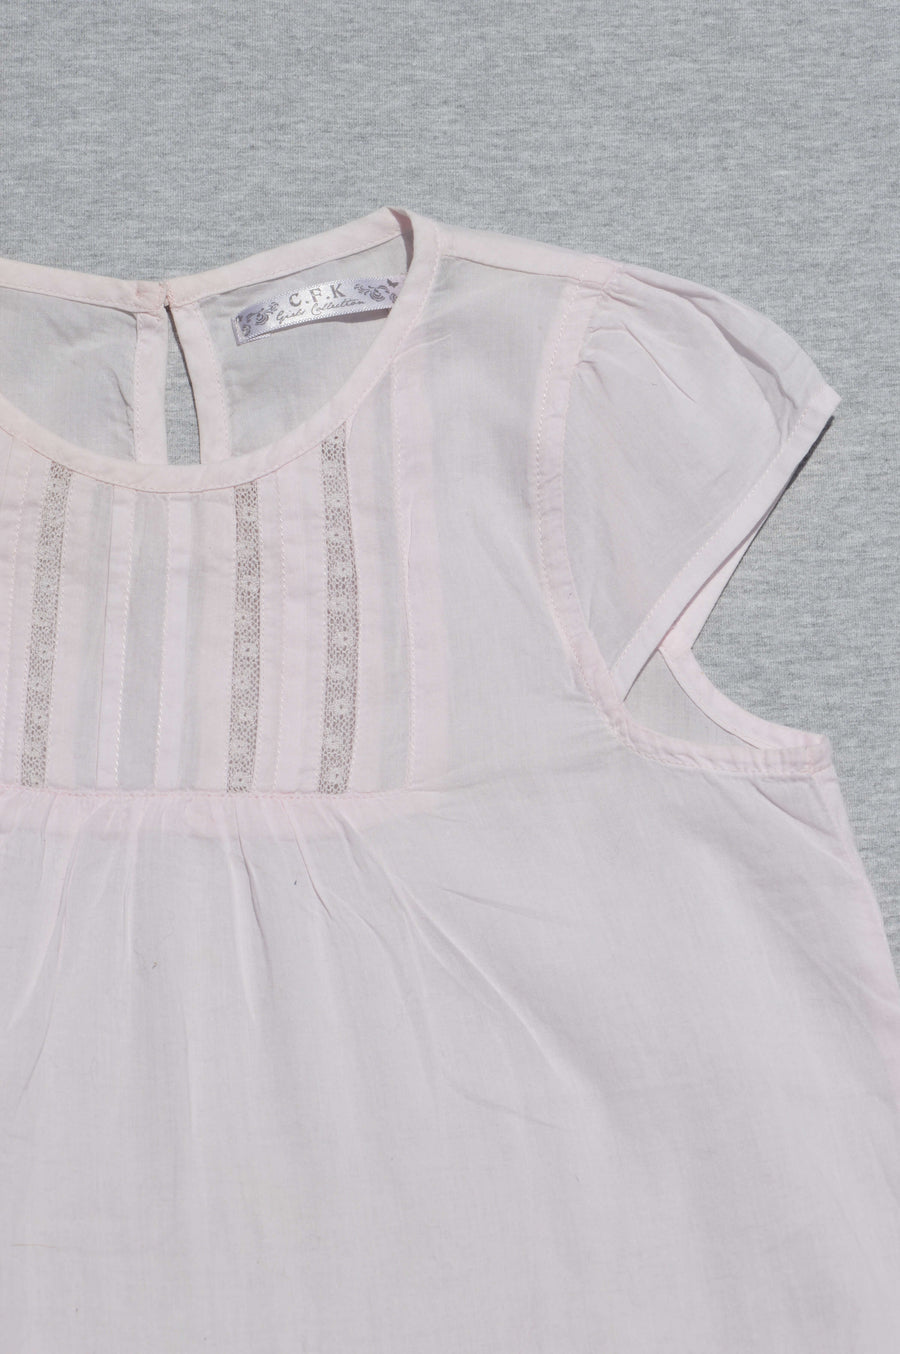 C.F.K pale pink floaty top, size 10